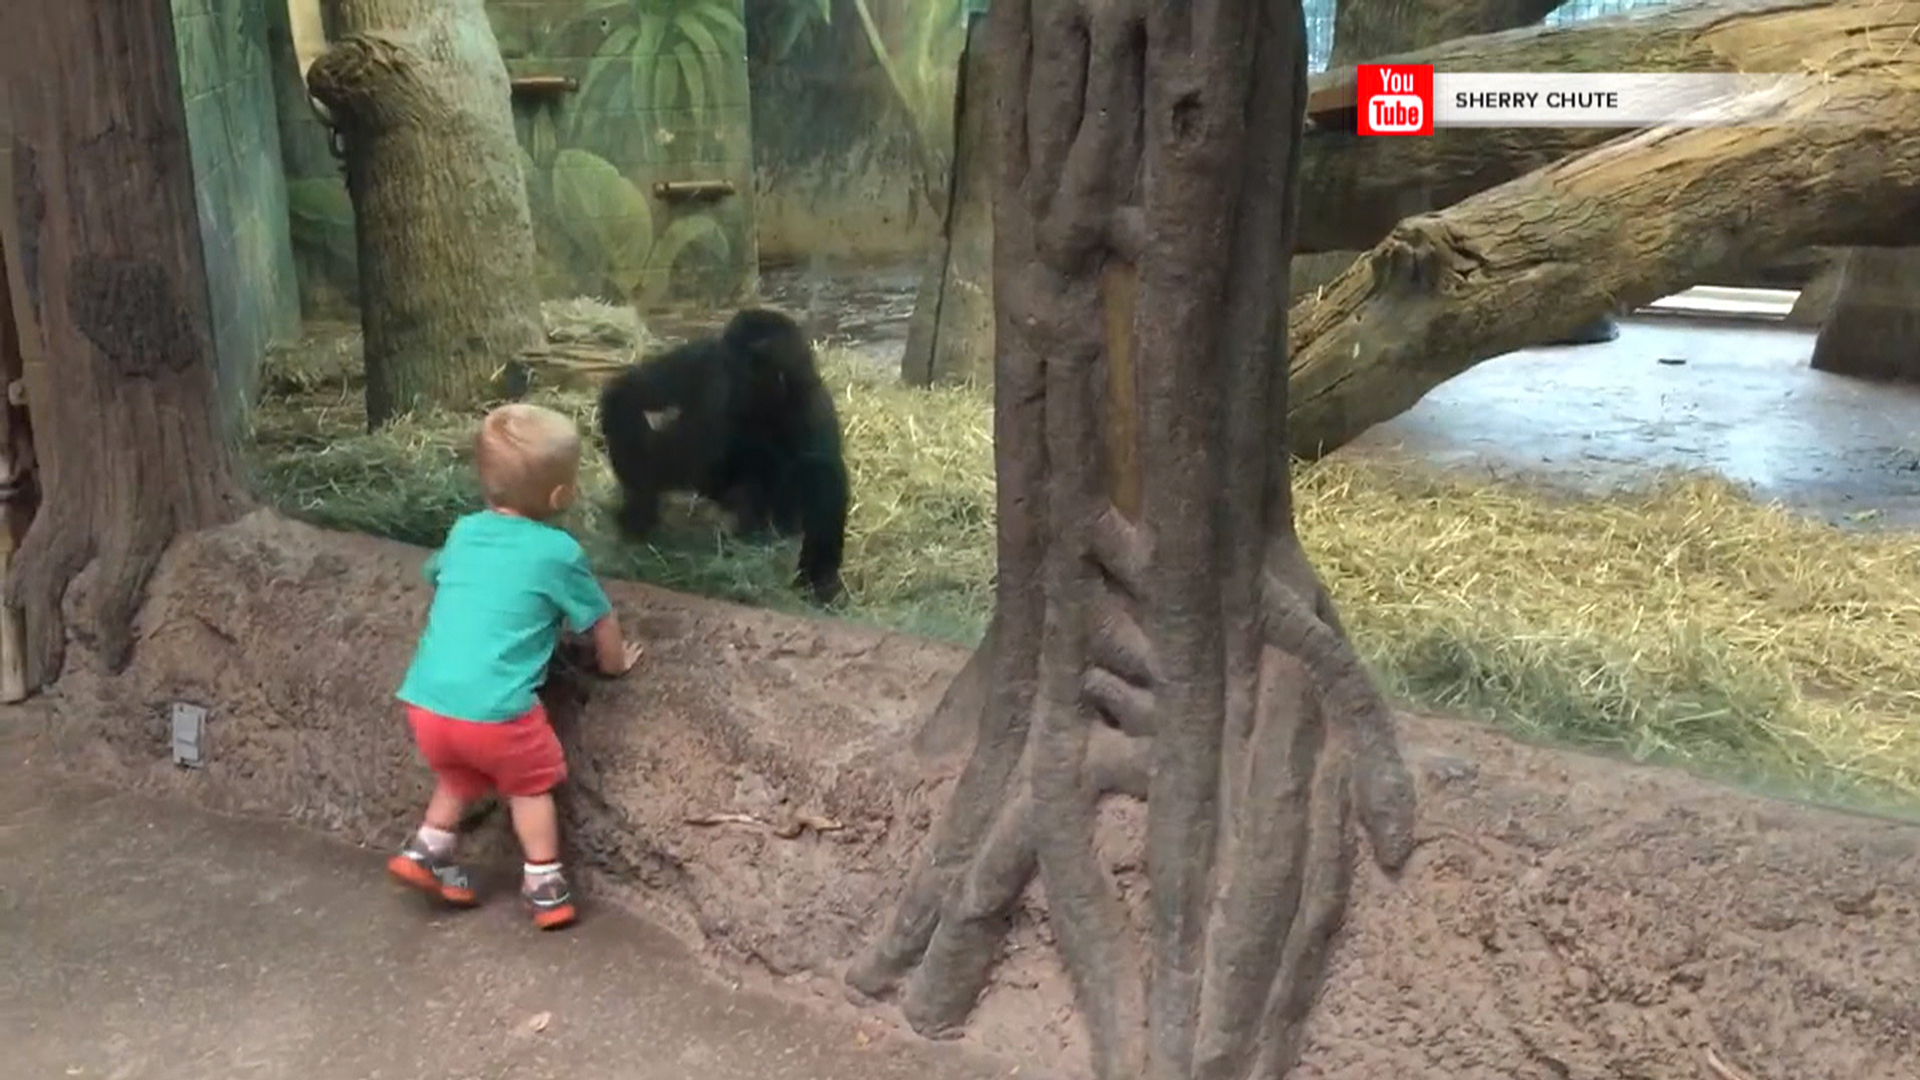 boy and gorilla play at zoo scary